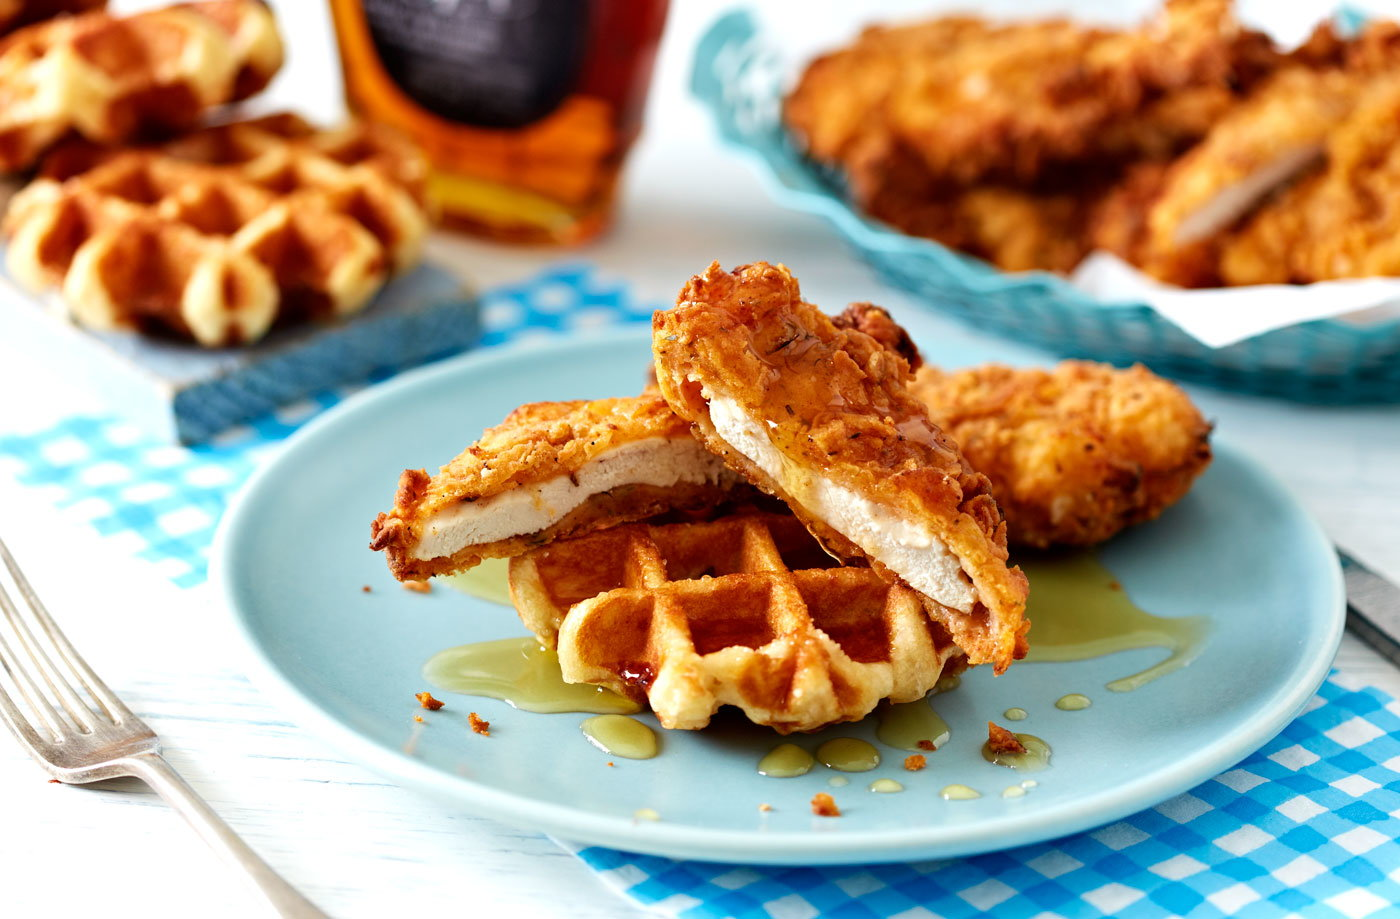 Buttermilk chicken and waffles recipe